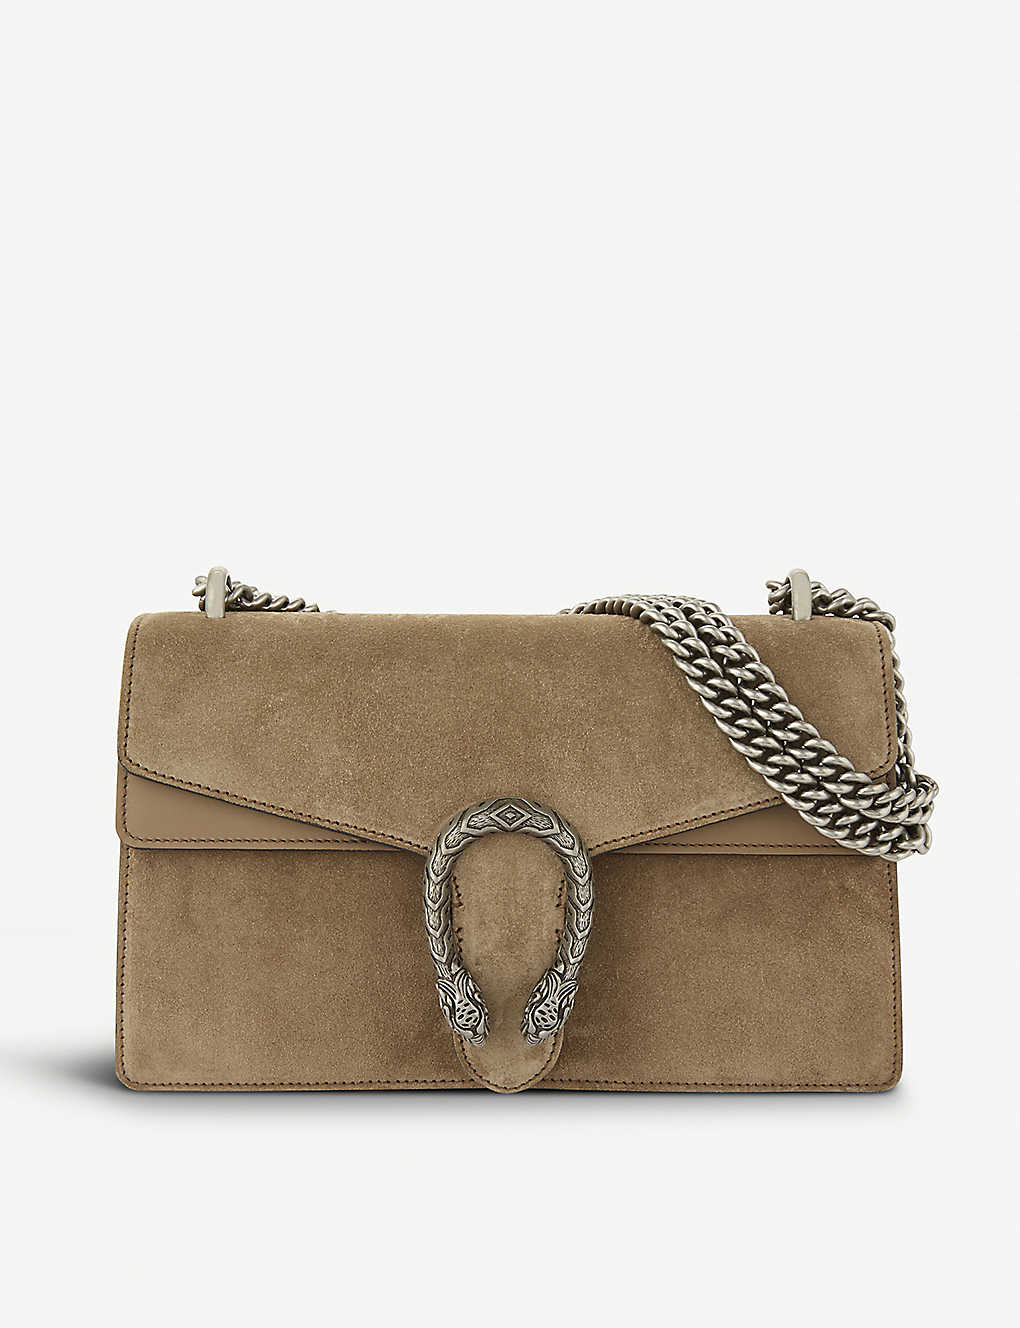 b1bc0bd18e88 GUCCI - Dionysus small suede shoulder bag | Selfridges.com